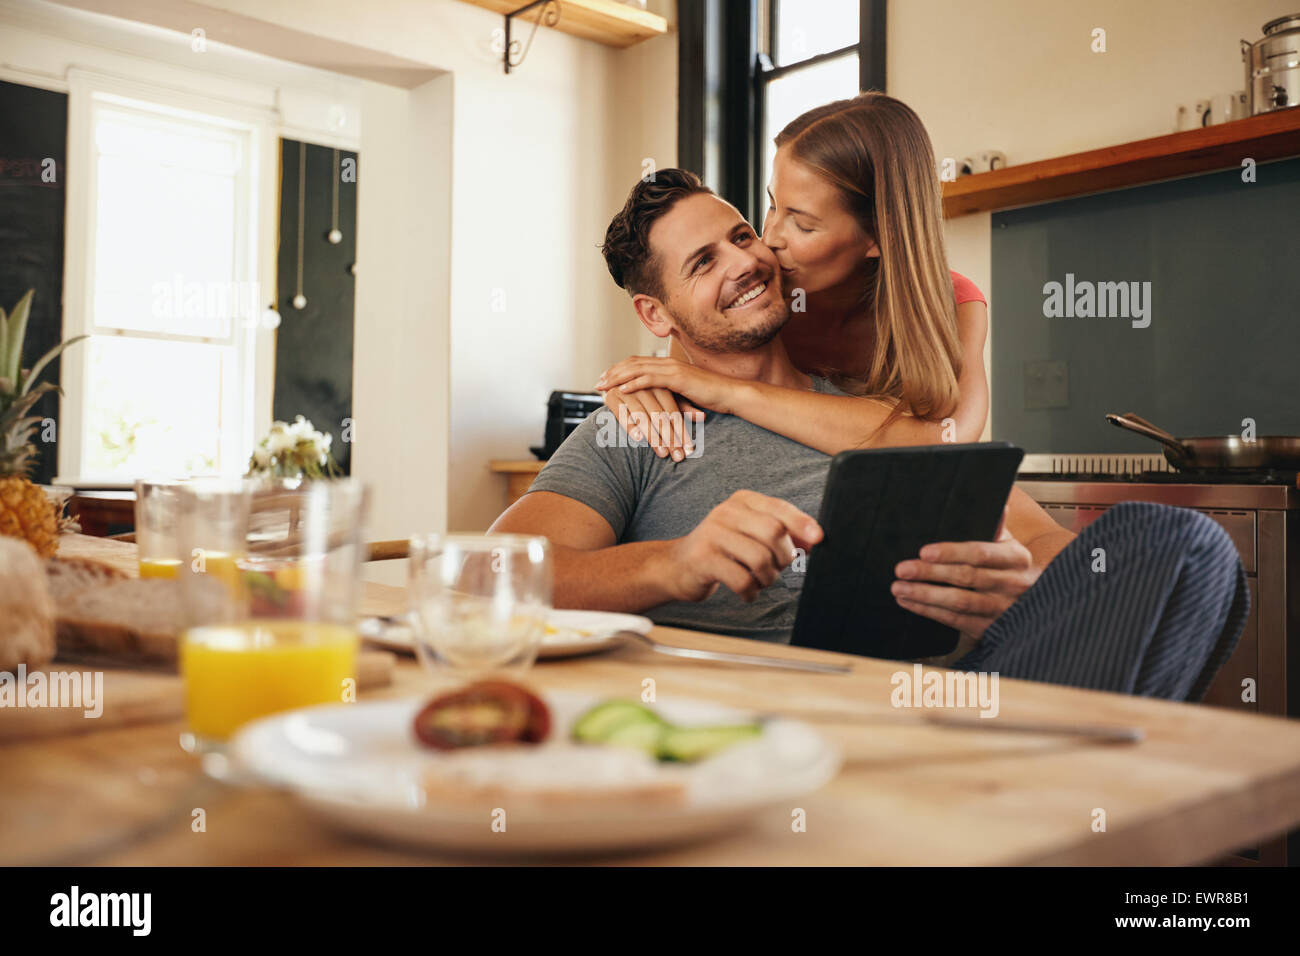 Young man holding a digital tablet while his girlfriend hugs him from behind, giving him a good morning kiss. Young - Stock Image